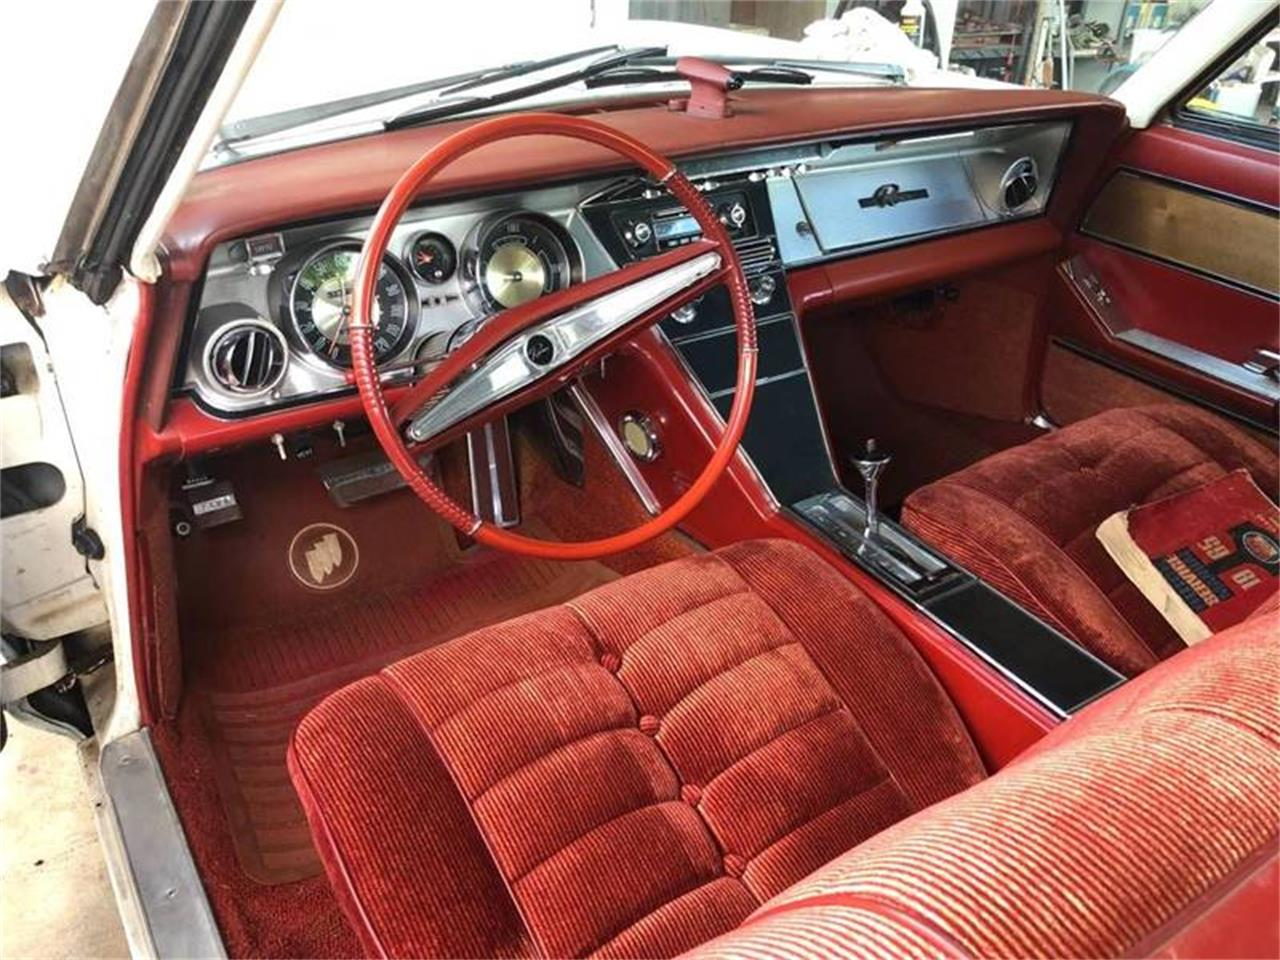 Large Picture of Classic '63 Buick Riviera located in Long Island New York - $13,500.00 - Q8HS